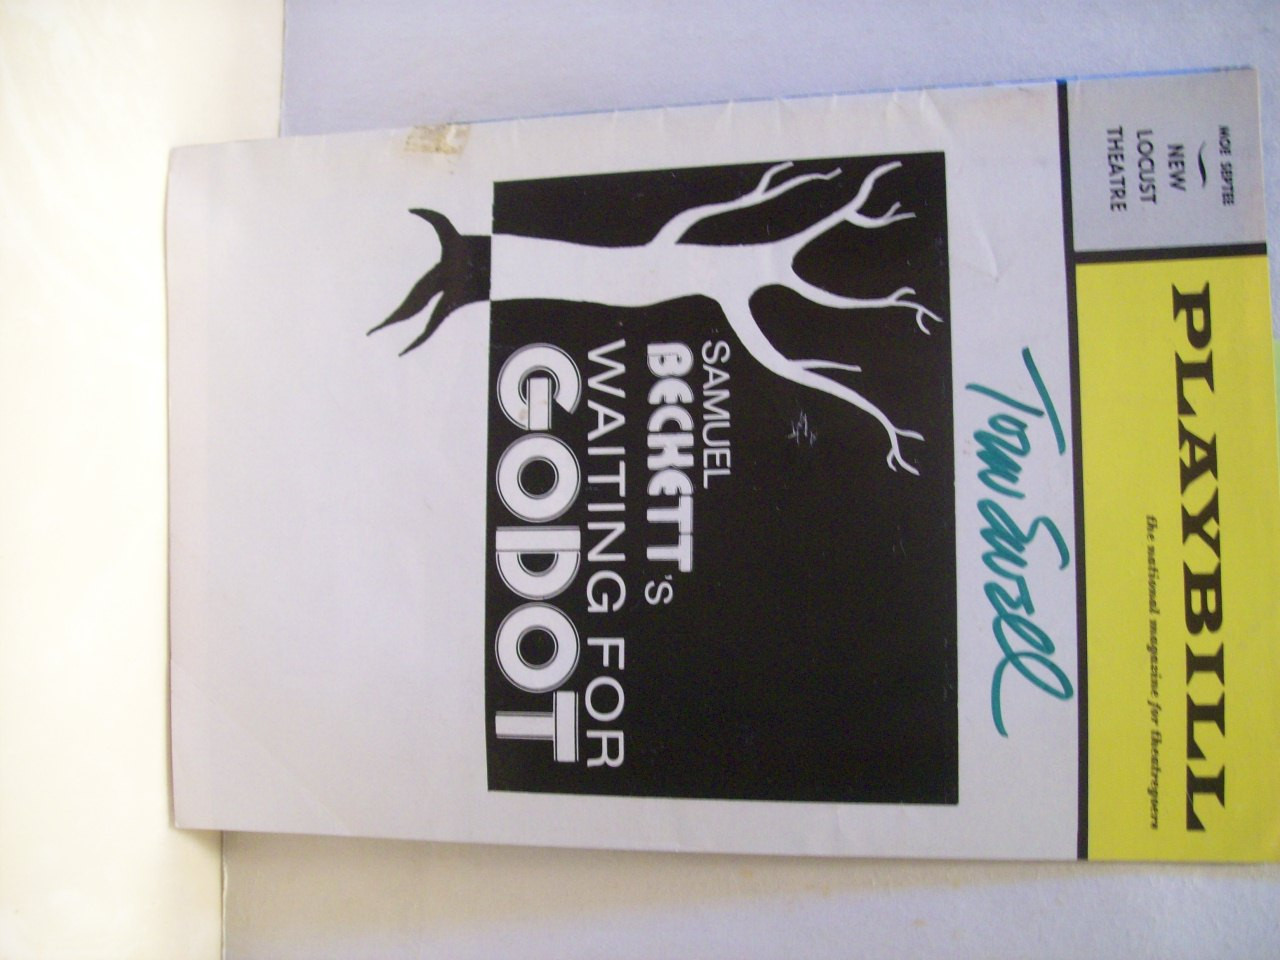 Ewell, Tom Playbill Signed Autograph Waiting for Godot 1973